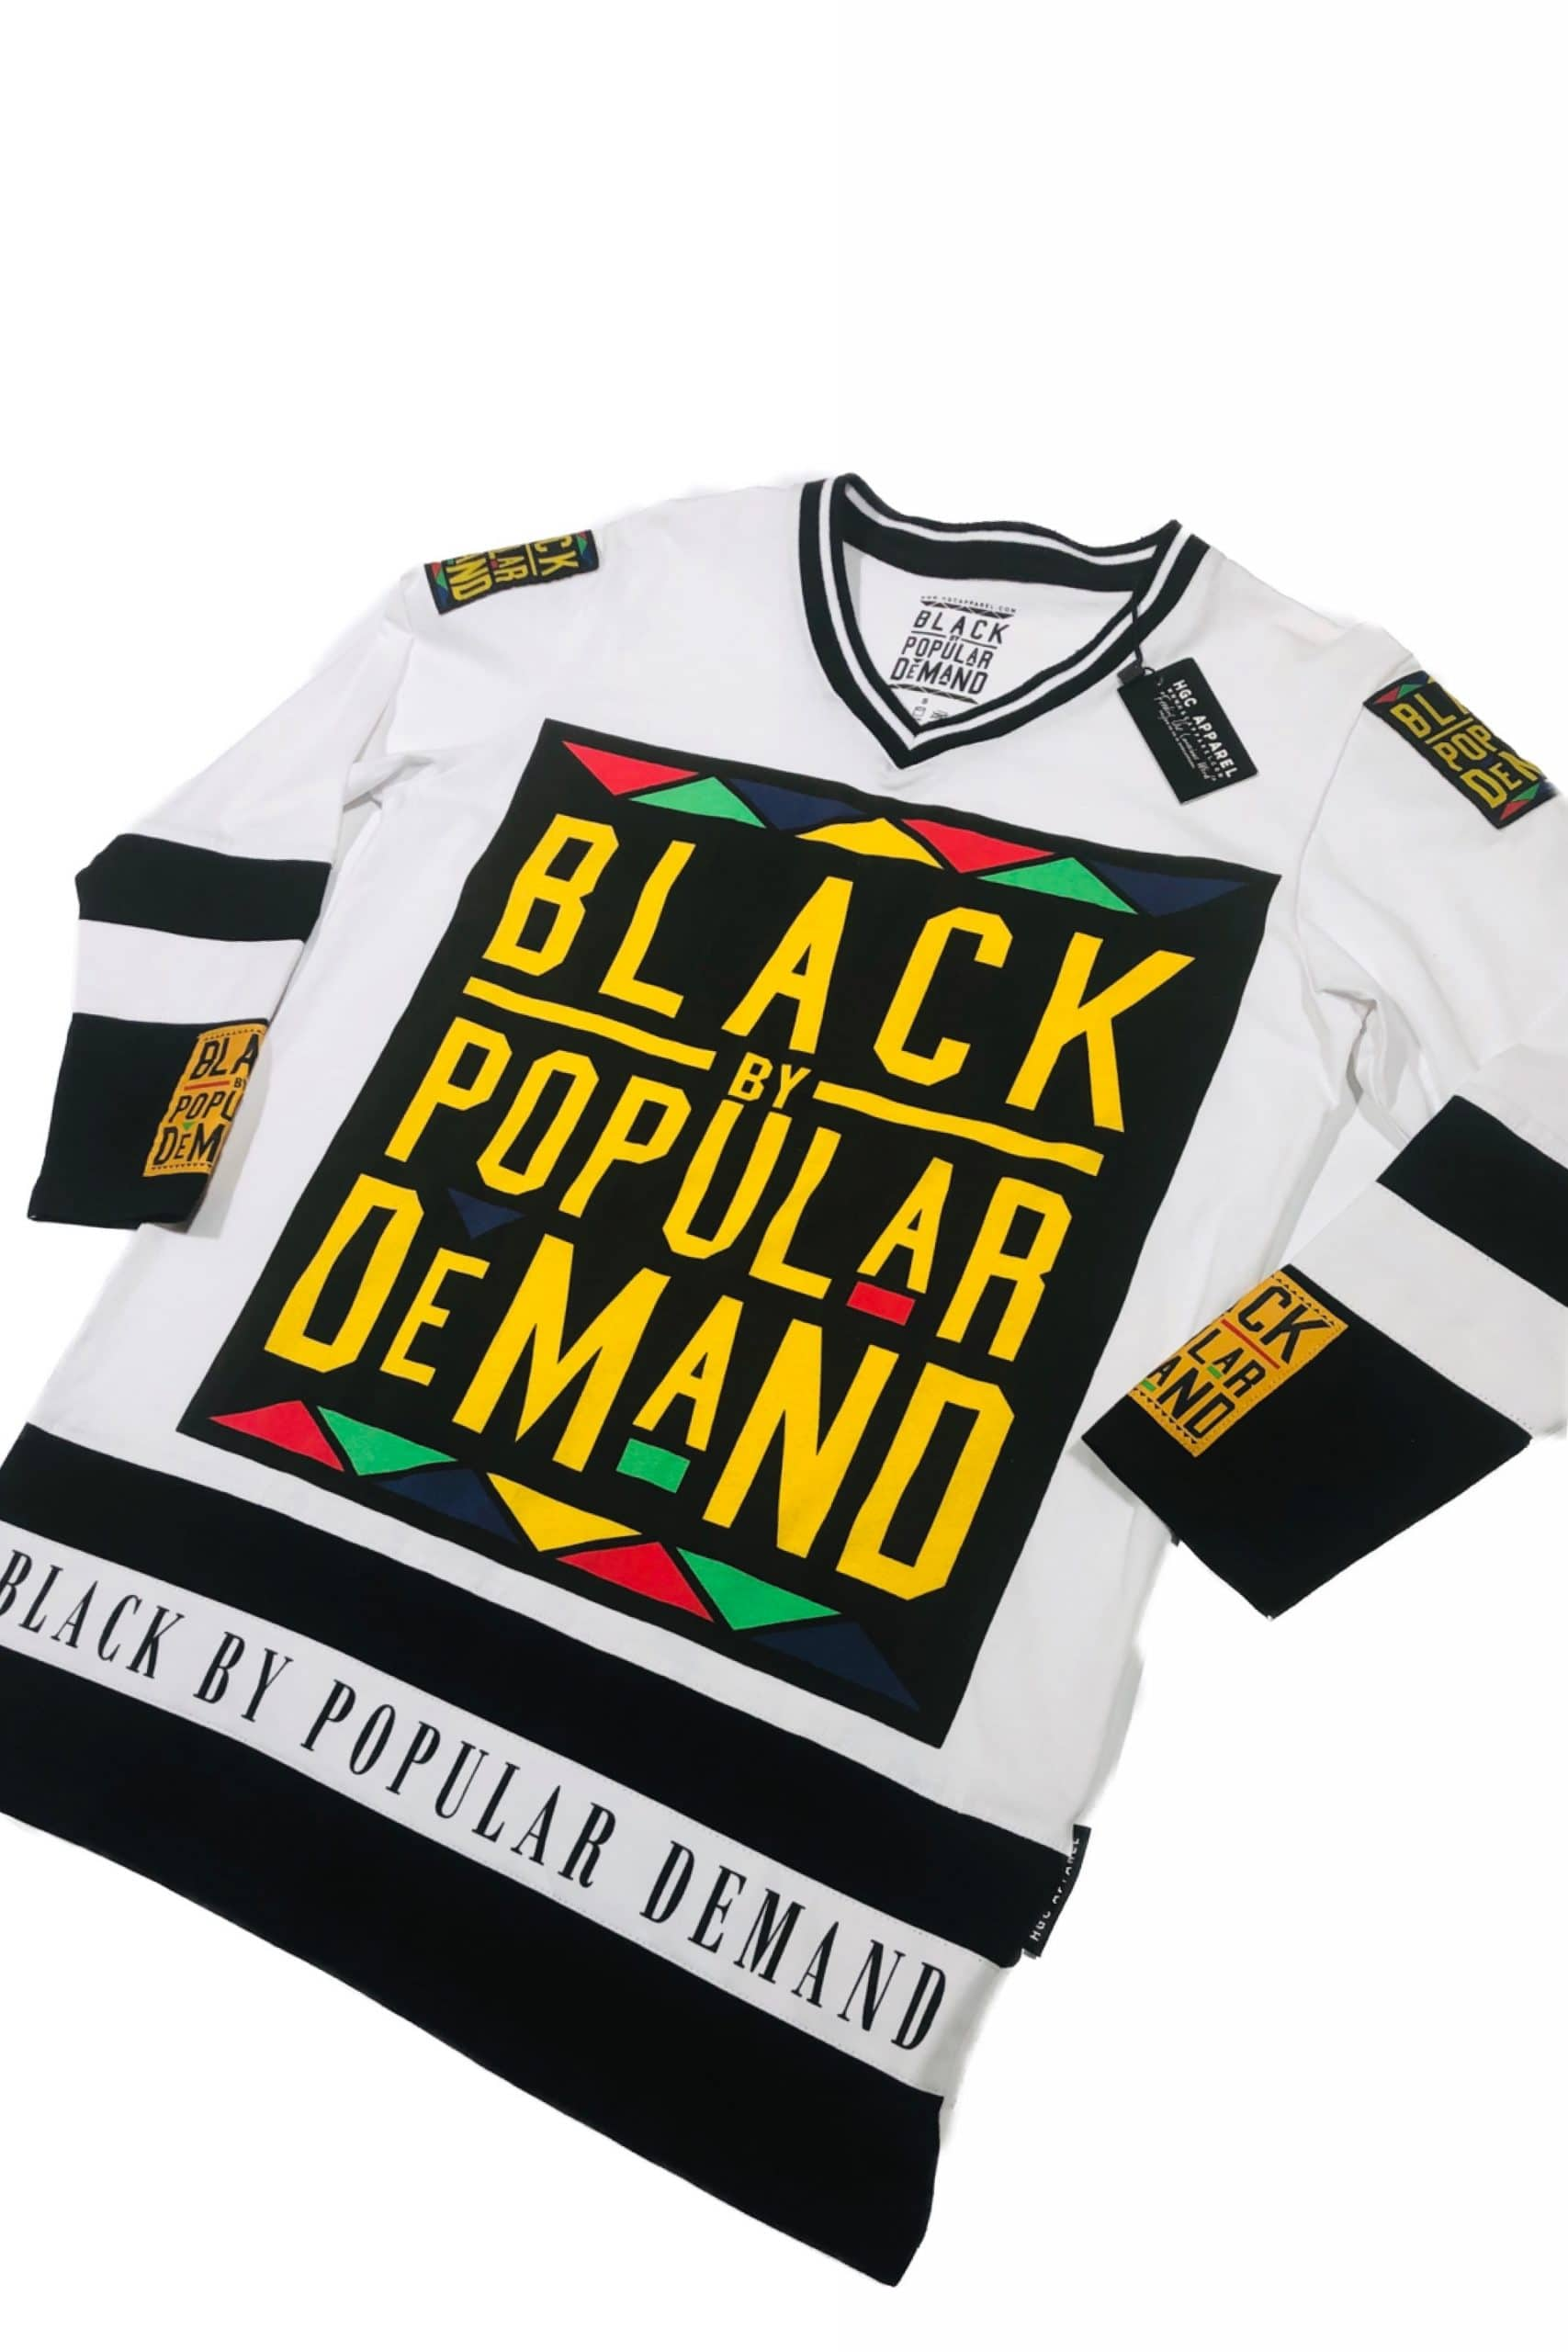 Black by Popular Demand® Unisex Long Sleeve Hockey Jersey HGC Apparel